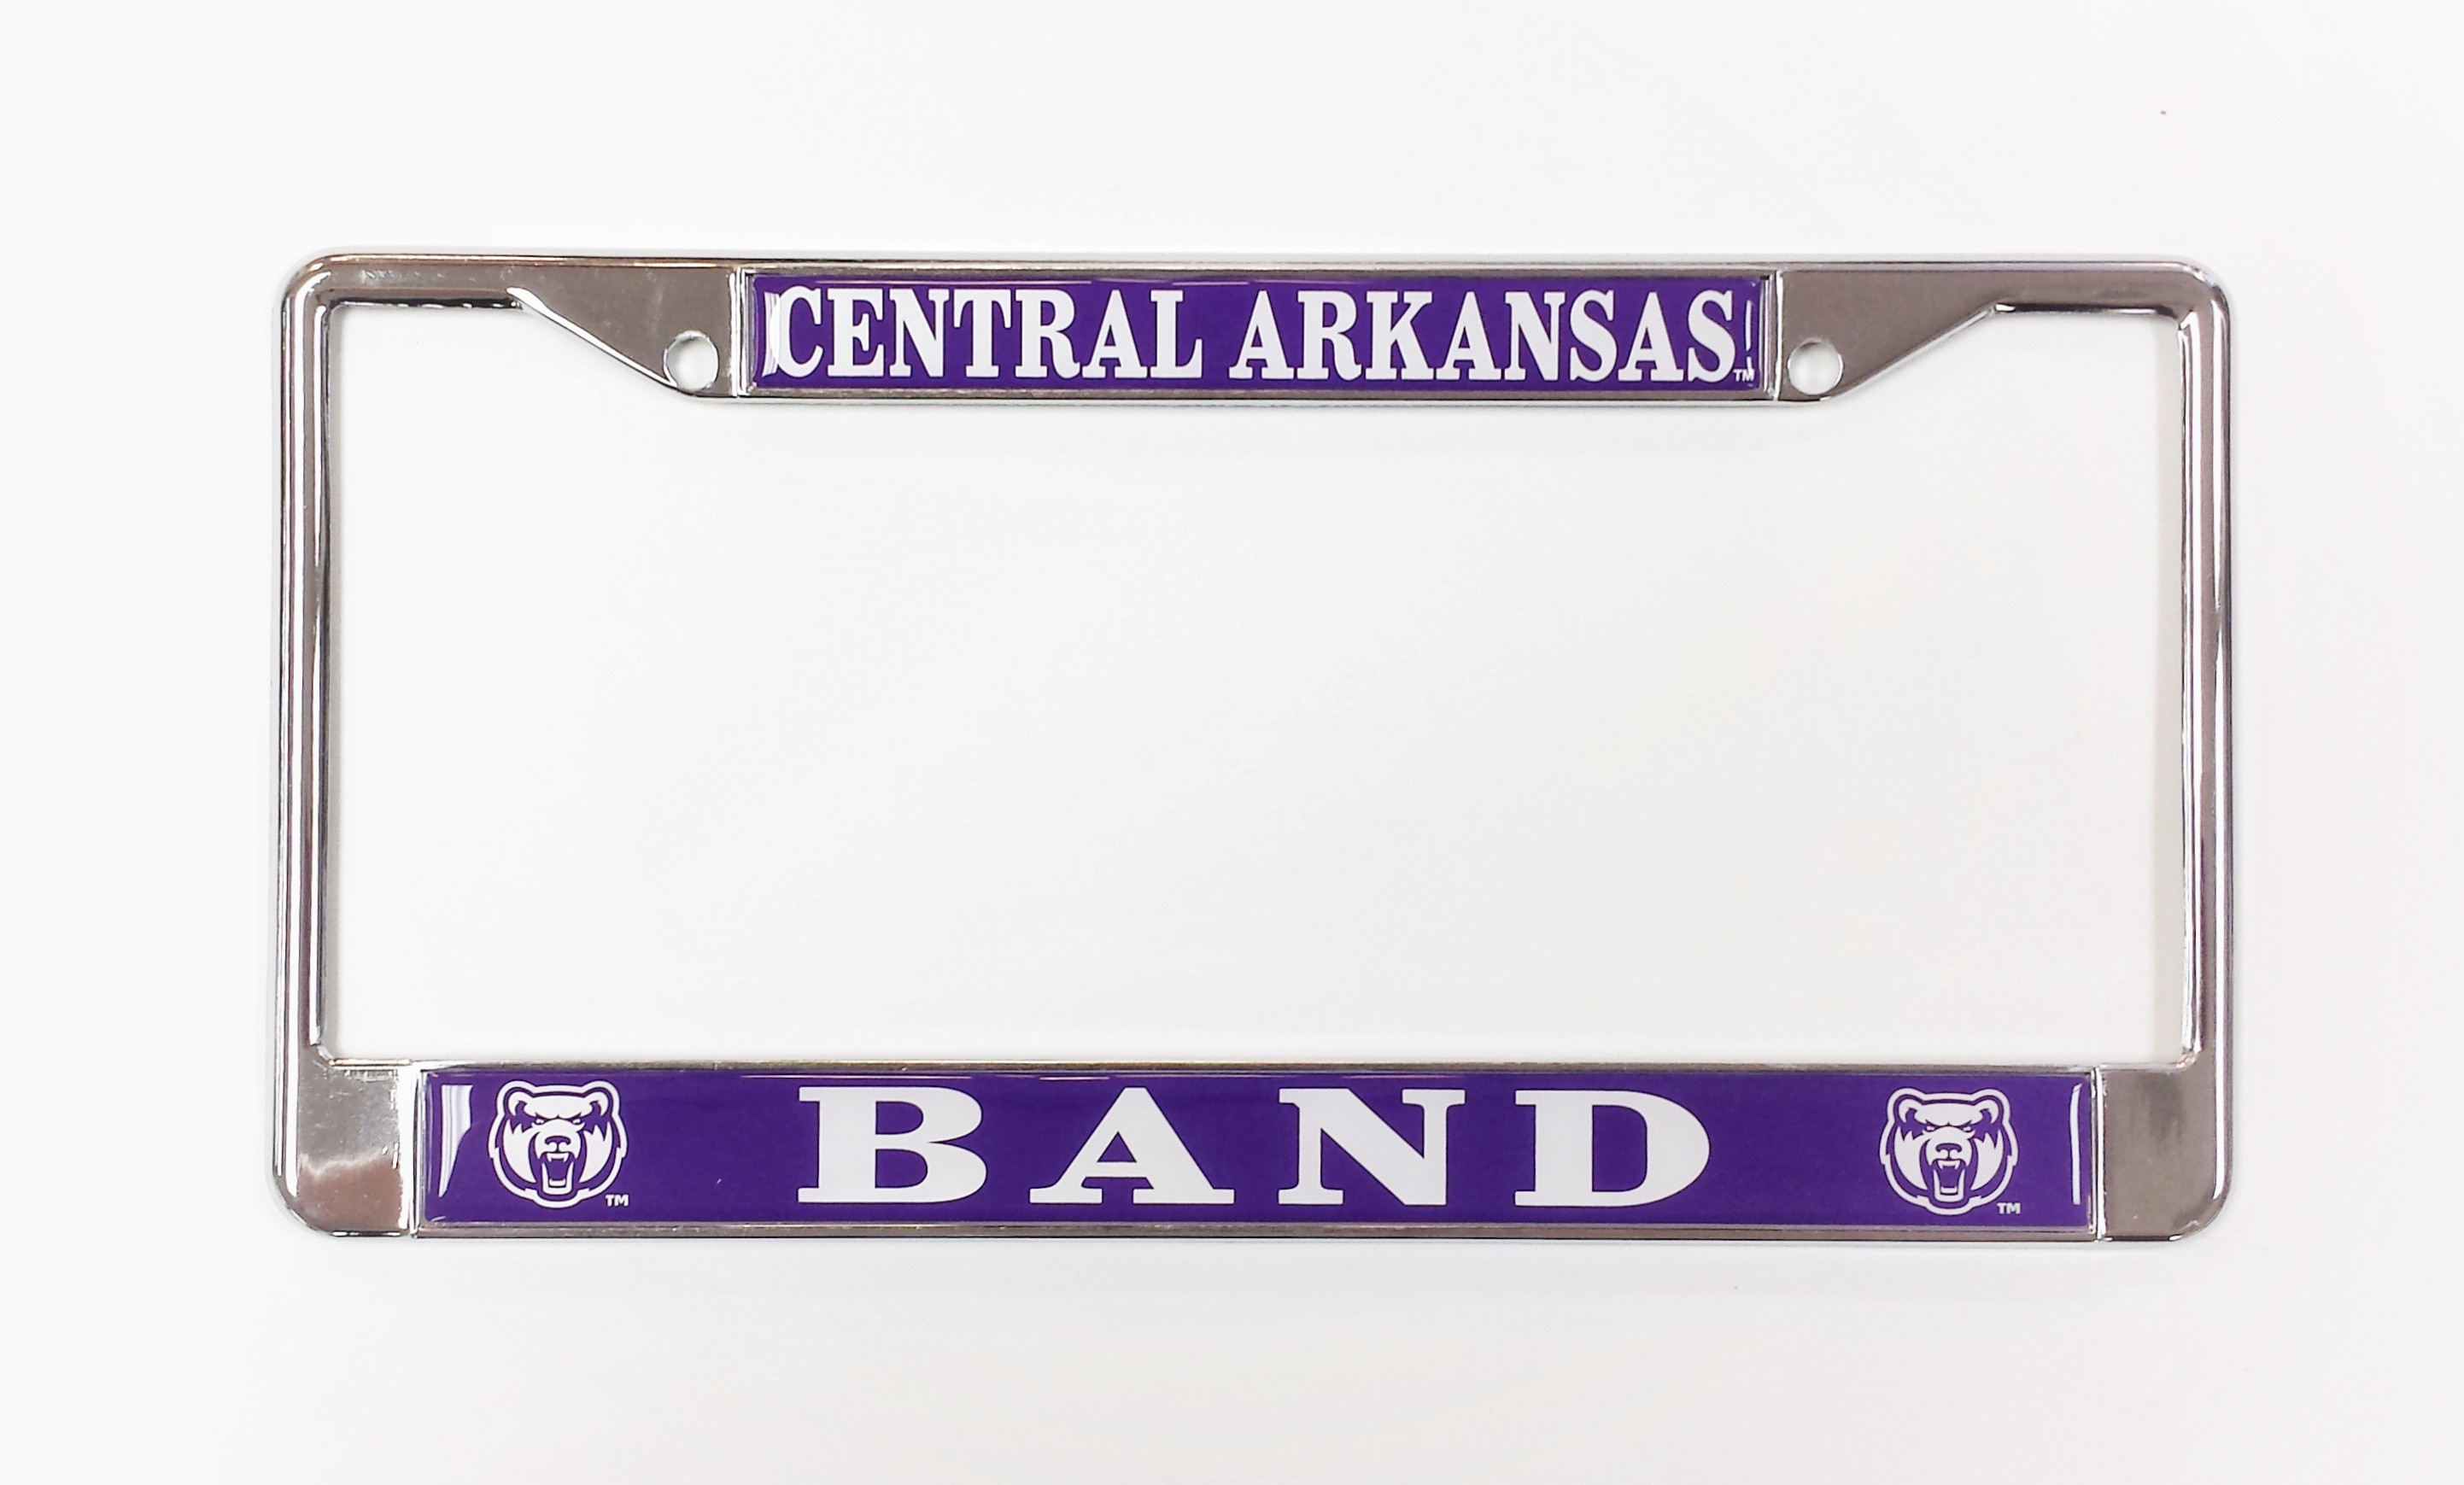 Central Arkansas Band License Frame